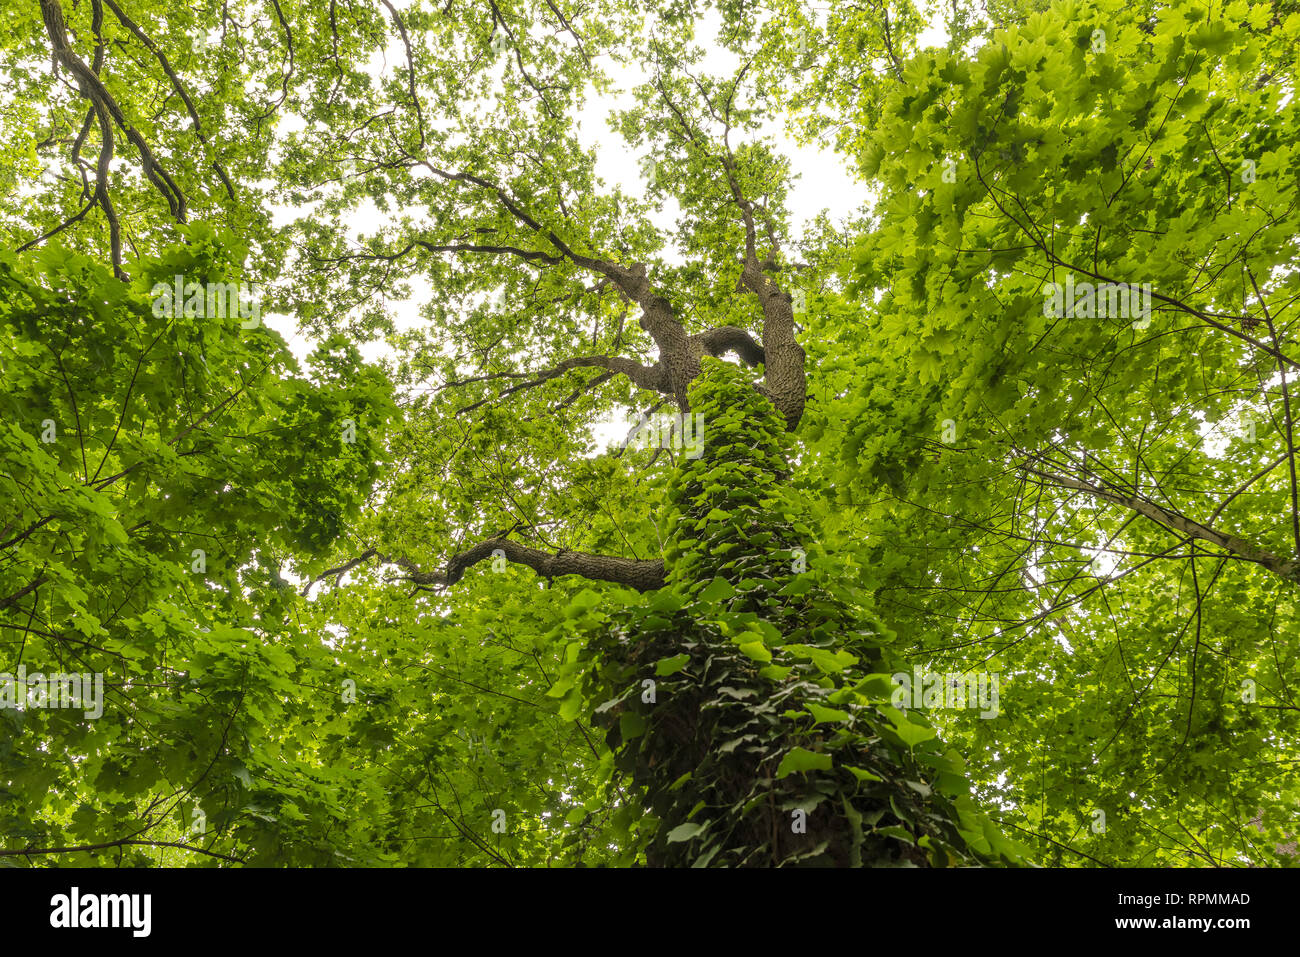 Tree covered by climbing plant inside the woods, looking upward - Stock Image